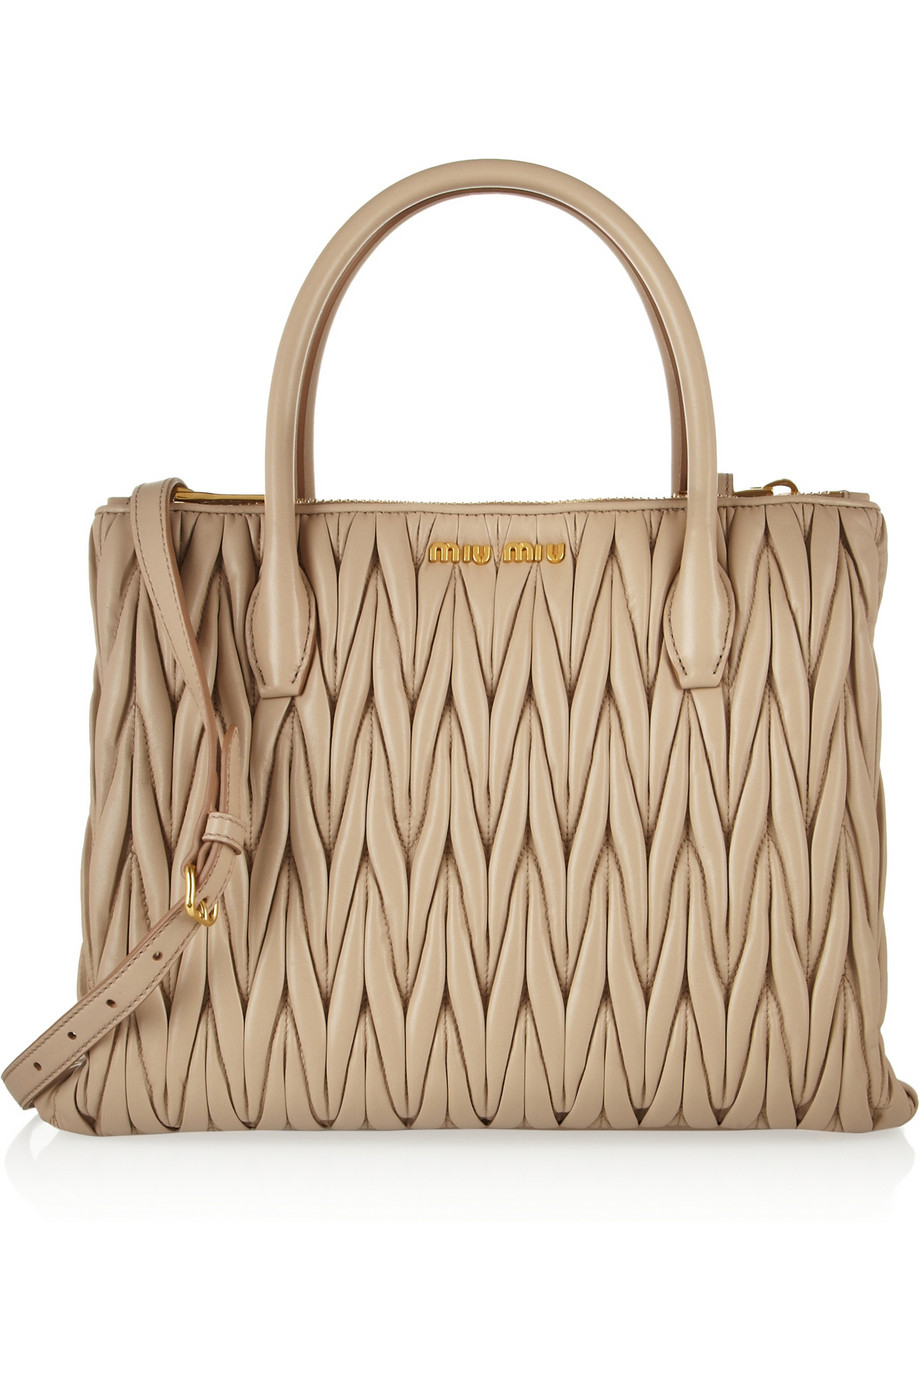 Lyst - Miu Miu Matelassé Leather Tote in Natural 1edee2eca3dd0